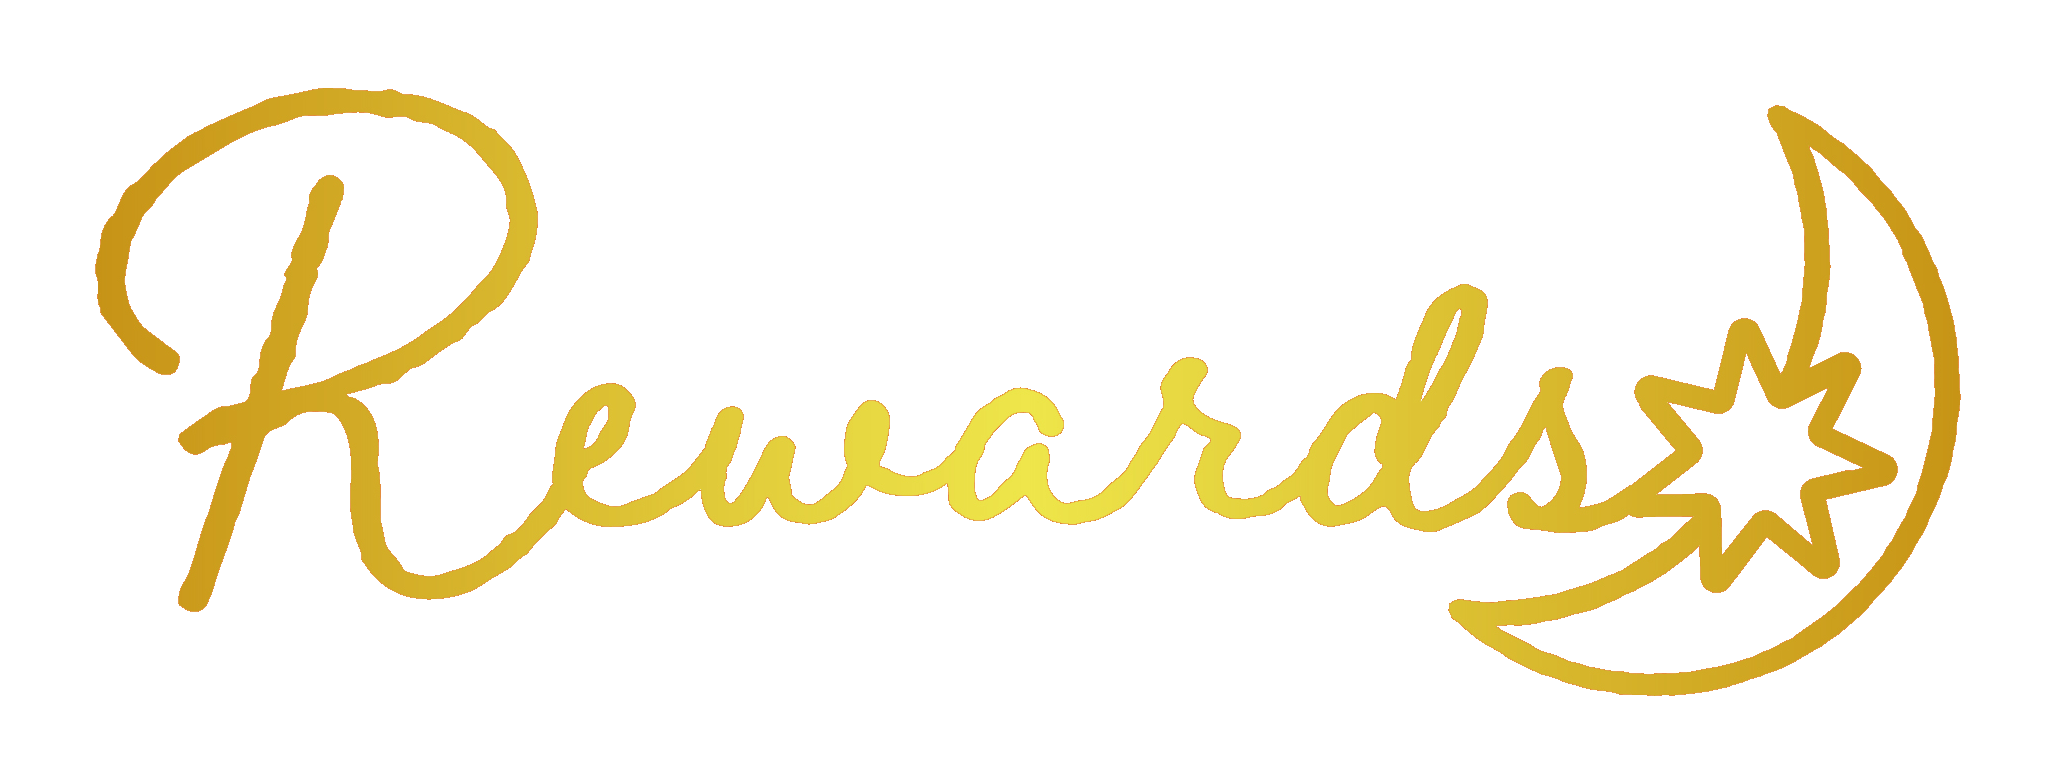 crescentrewards-logo-gold-rev